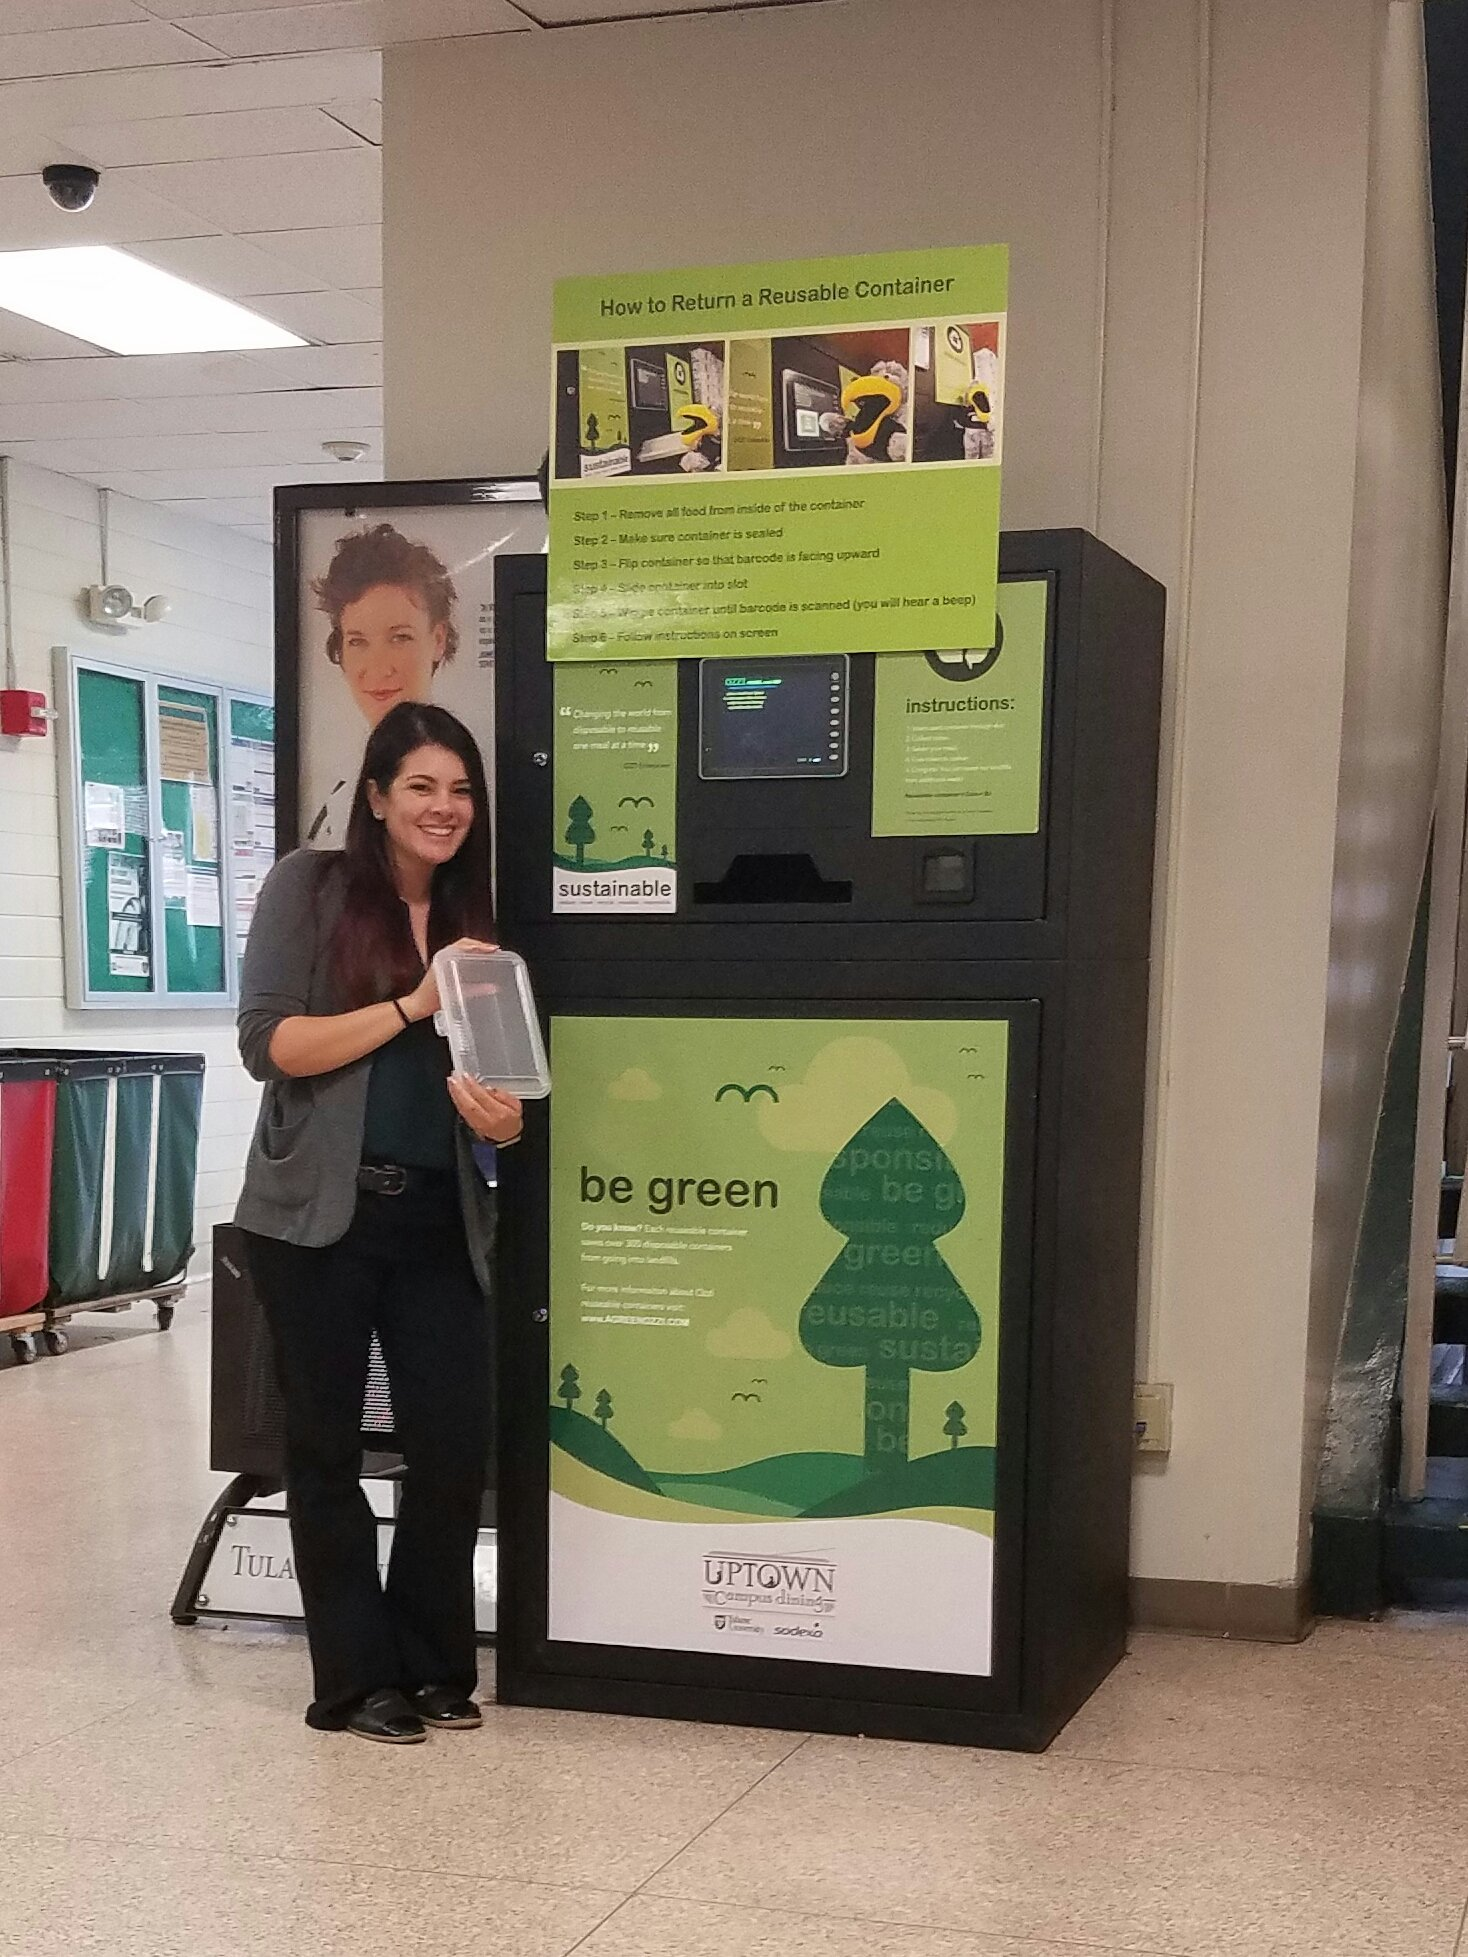 @UnivSvcs We reduce waste by reusing our Ozzi containers at Bruff! How do you recycle @TUTechConnect ? #TulaneRecycles  @GreenTulane https://t.co/BMuwx4yTvt